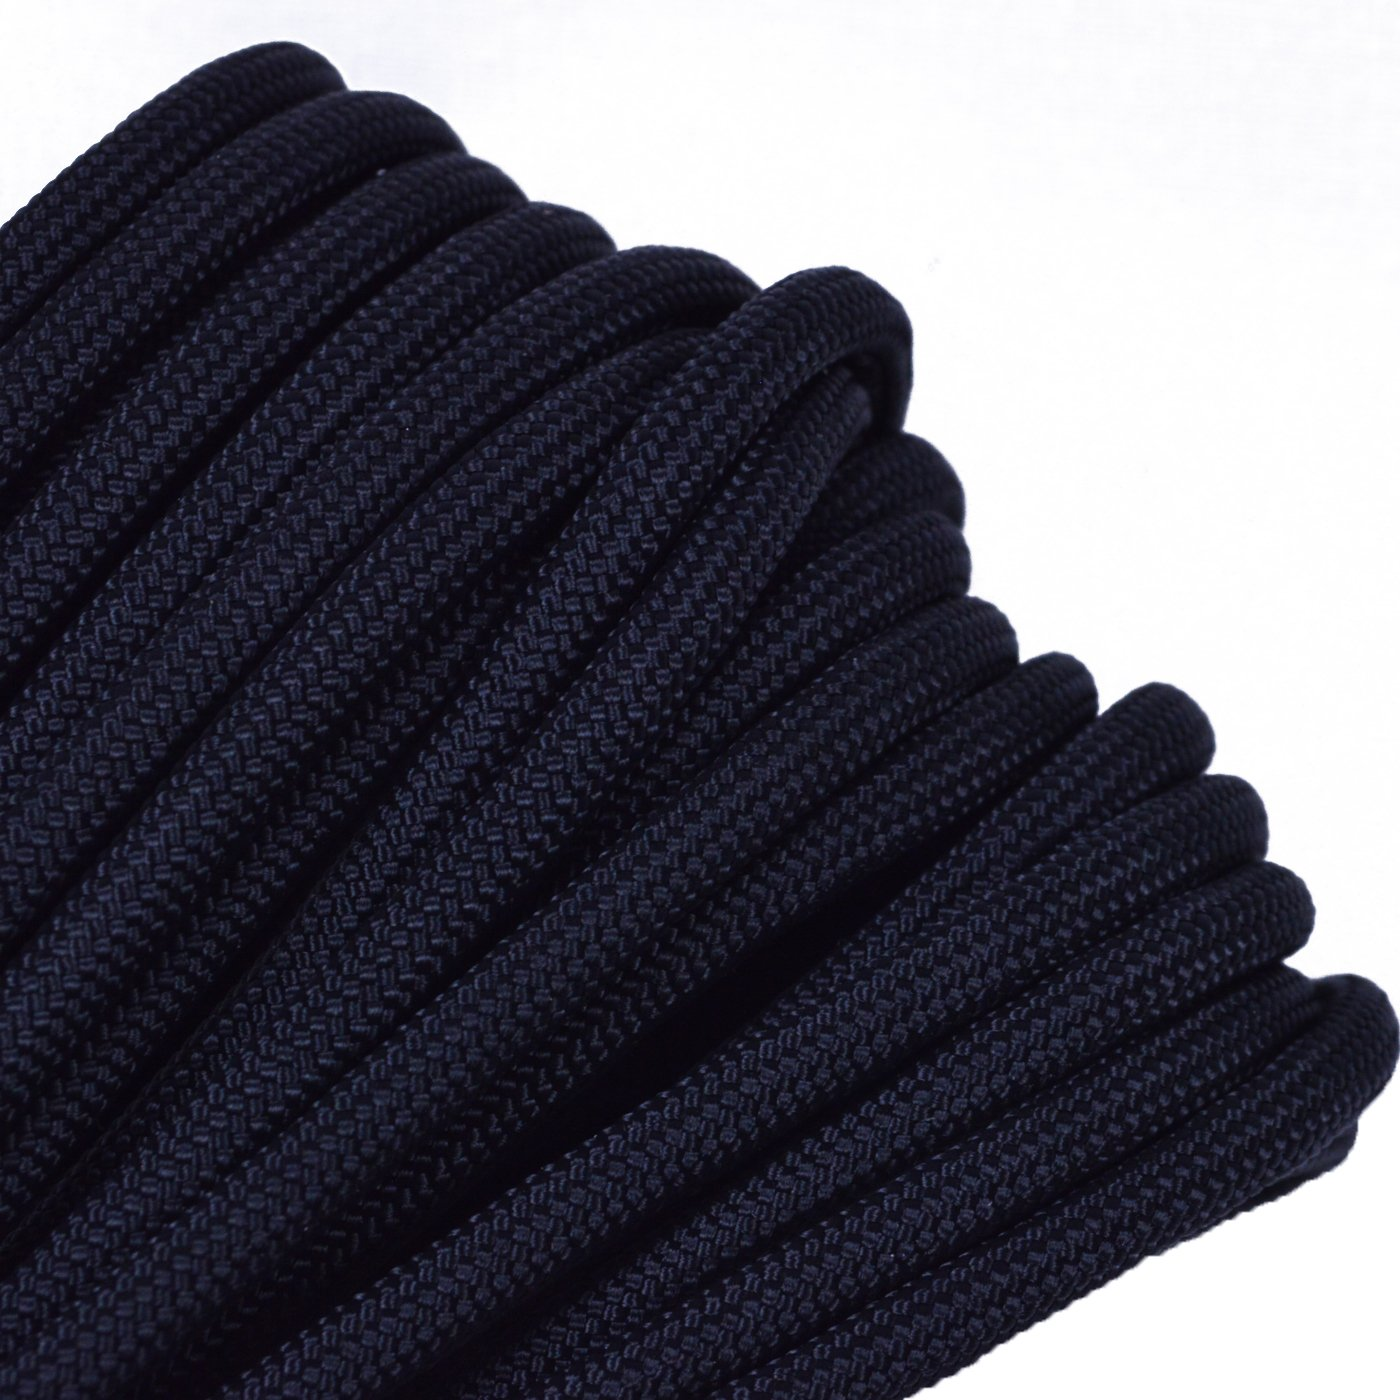 Black Mil-Spec Commercial Grade 550lb Type III Nylon Paracord - 50 Feet